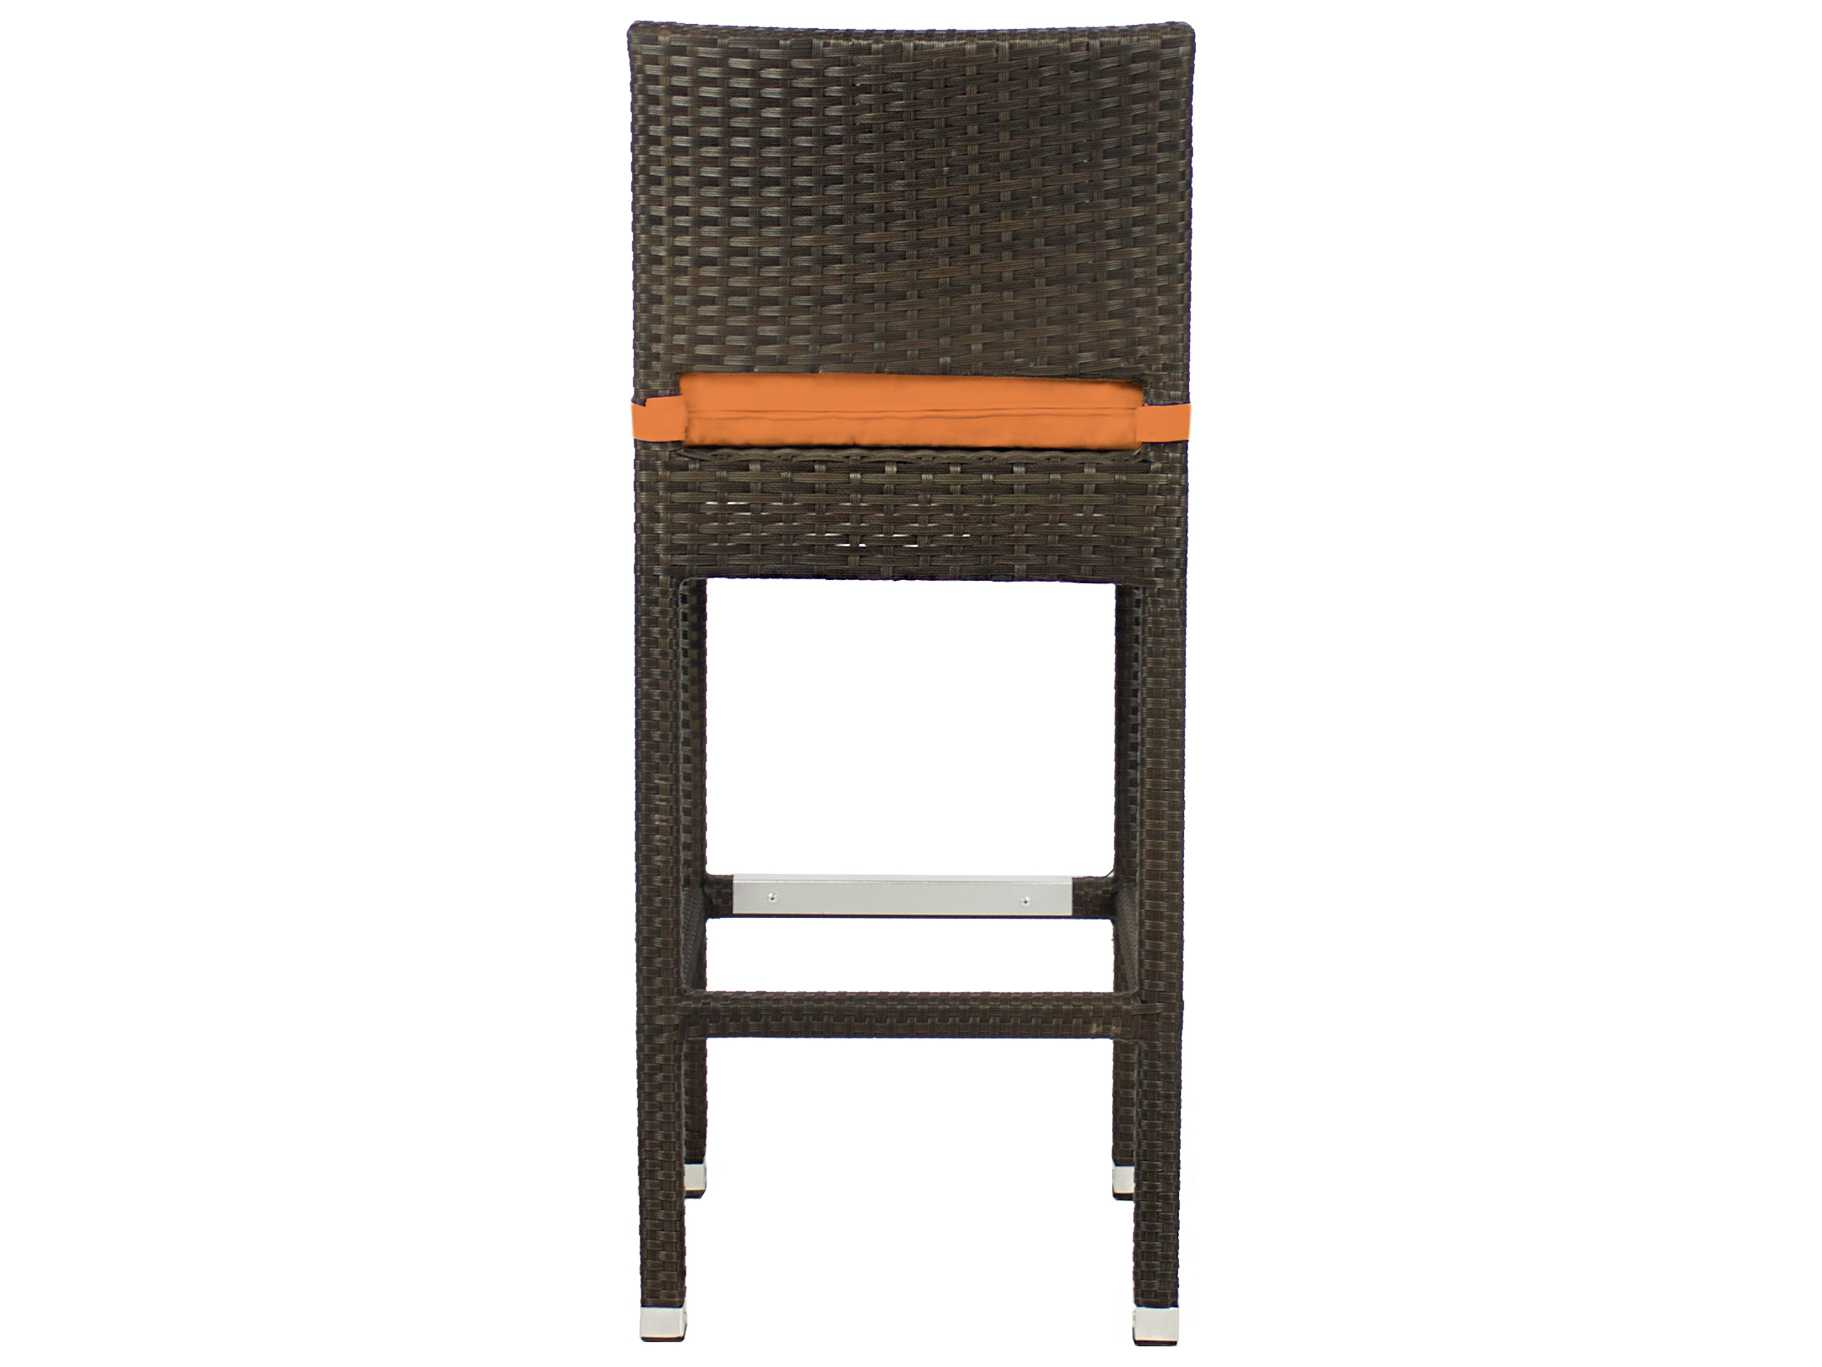 Source Outdoor Furniture Zen Wicker Bar Side Chair SO  : SCSO200217220zm from www.patioliving.com size 1822 x 1367 jpeg 72kB